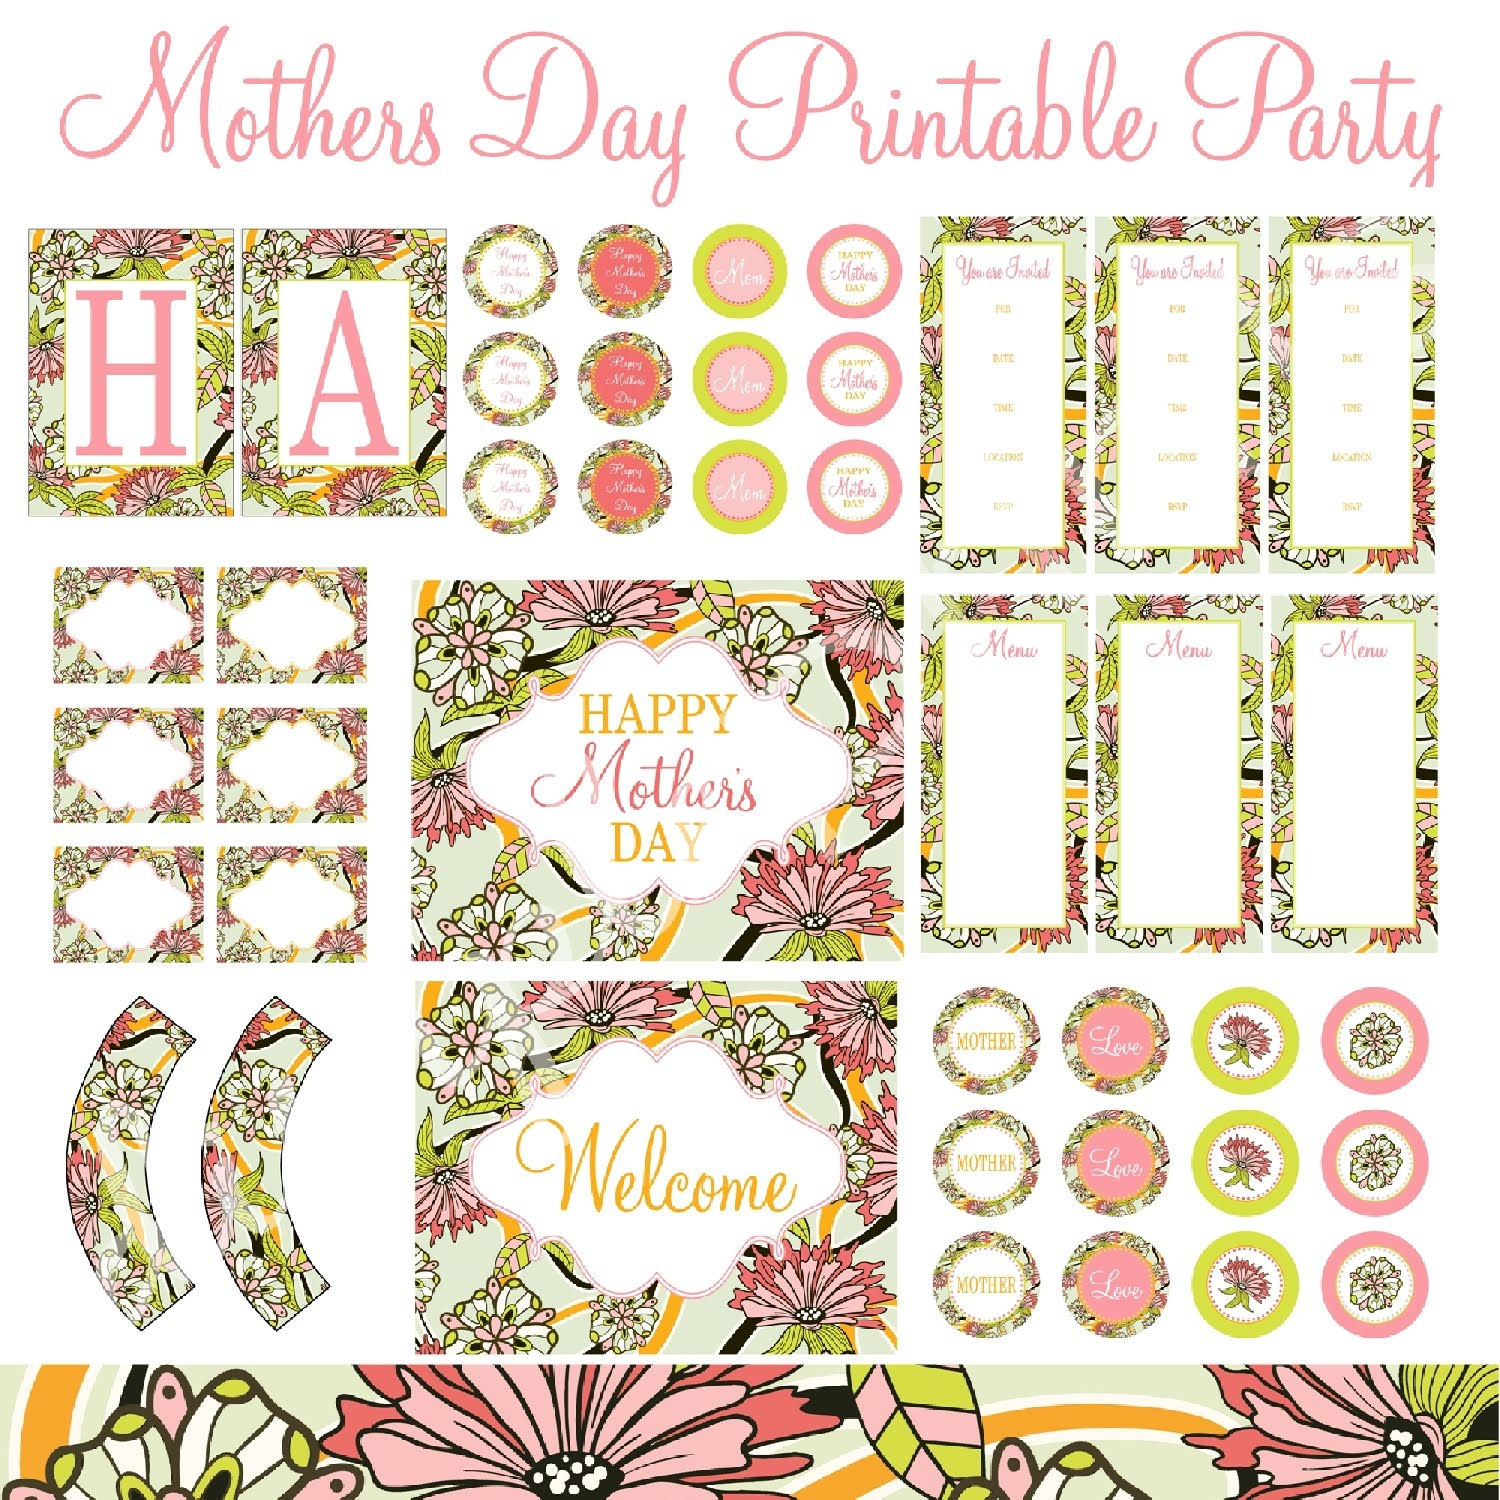 9f0266eb0d3b6 CLOSED GIVEAWAY: Mother's Day Printable Party - Dimple Prints